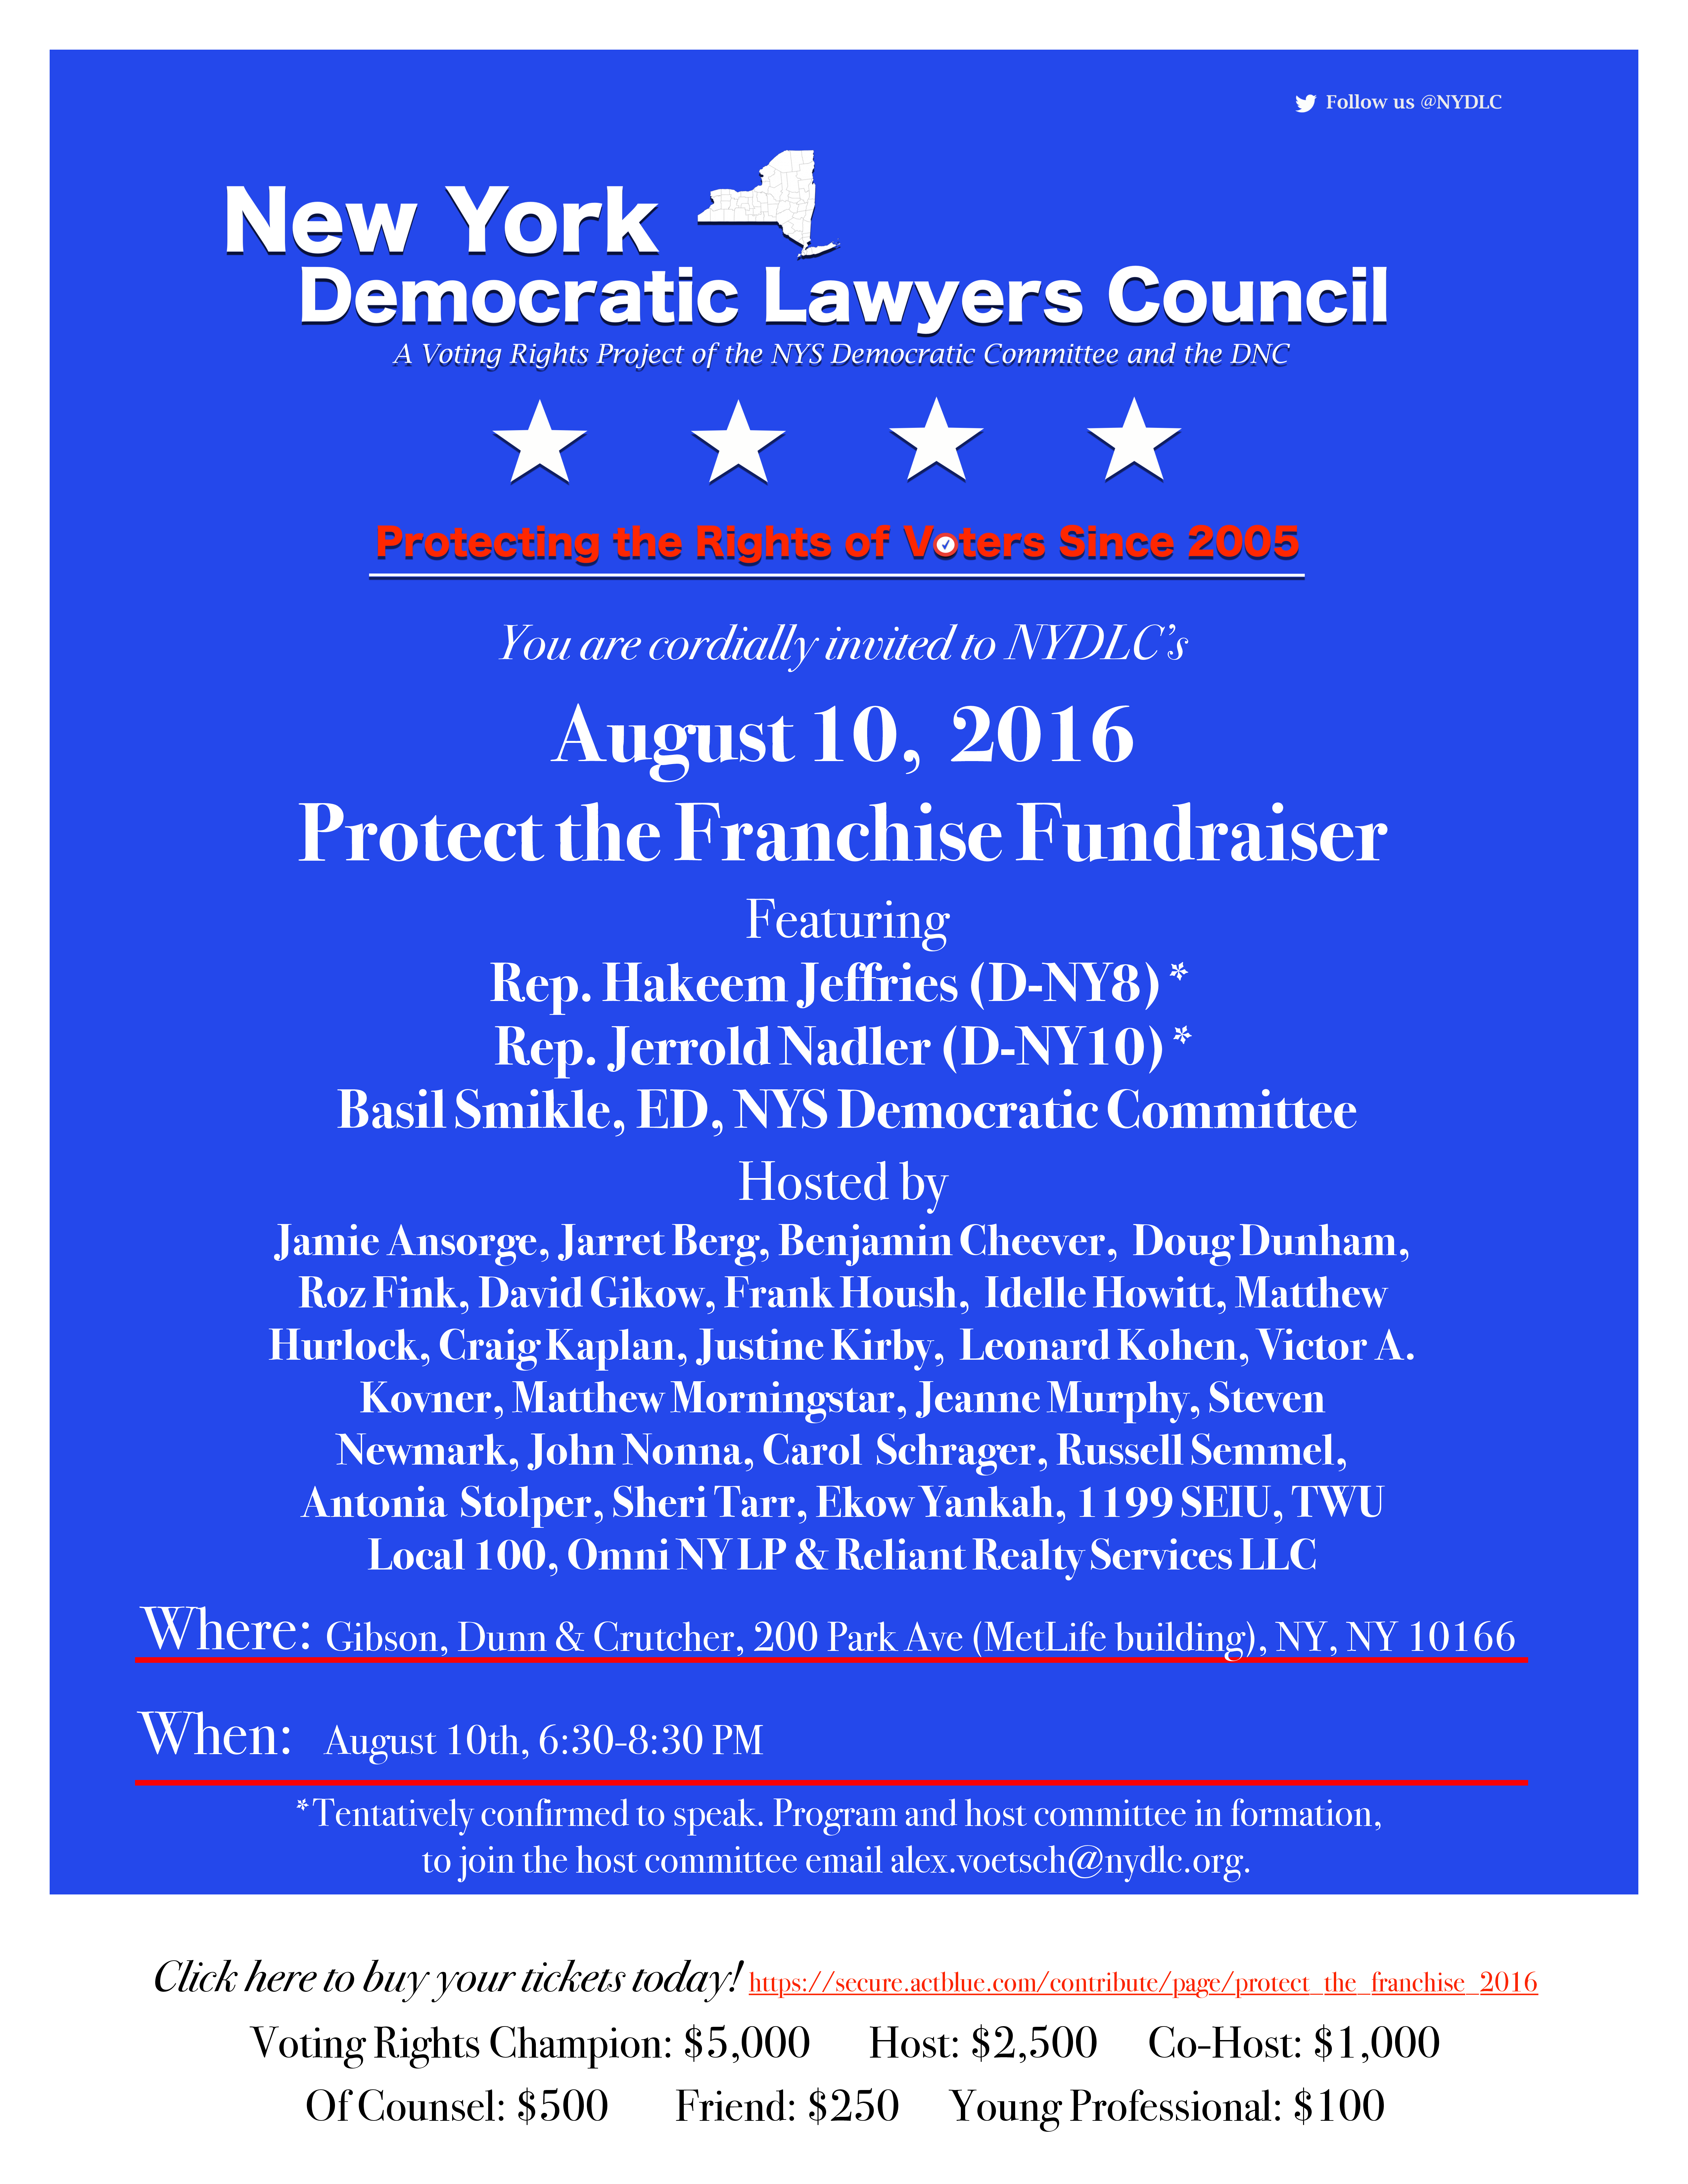 NYDLC_8-10_Protect_the_Franchise_(8-9).png